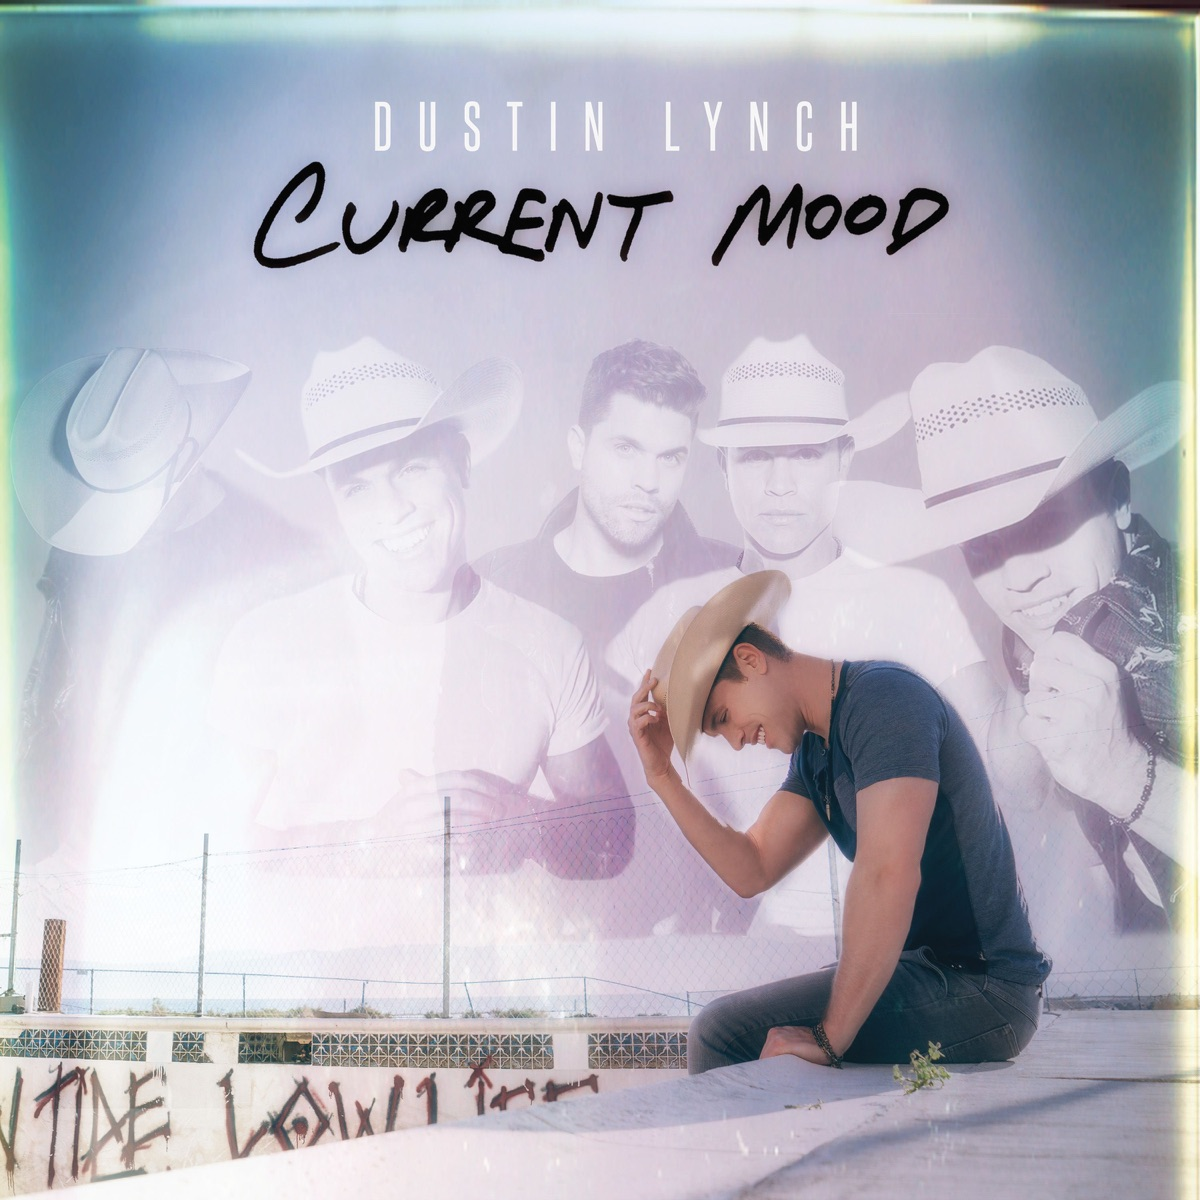 Current Mood Dustin Lynch CD cover